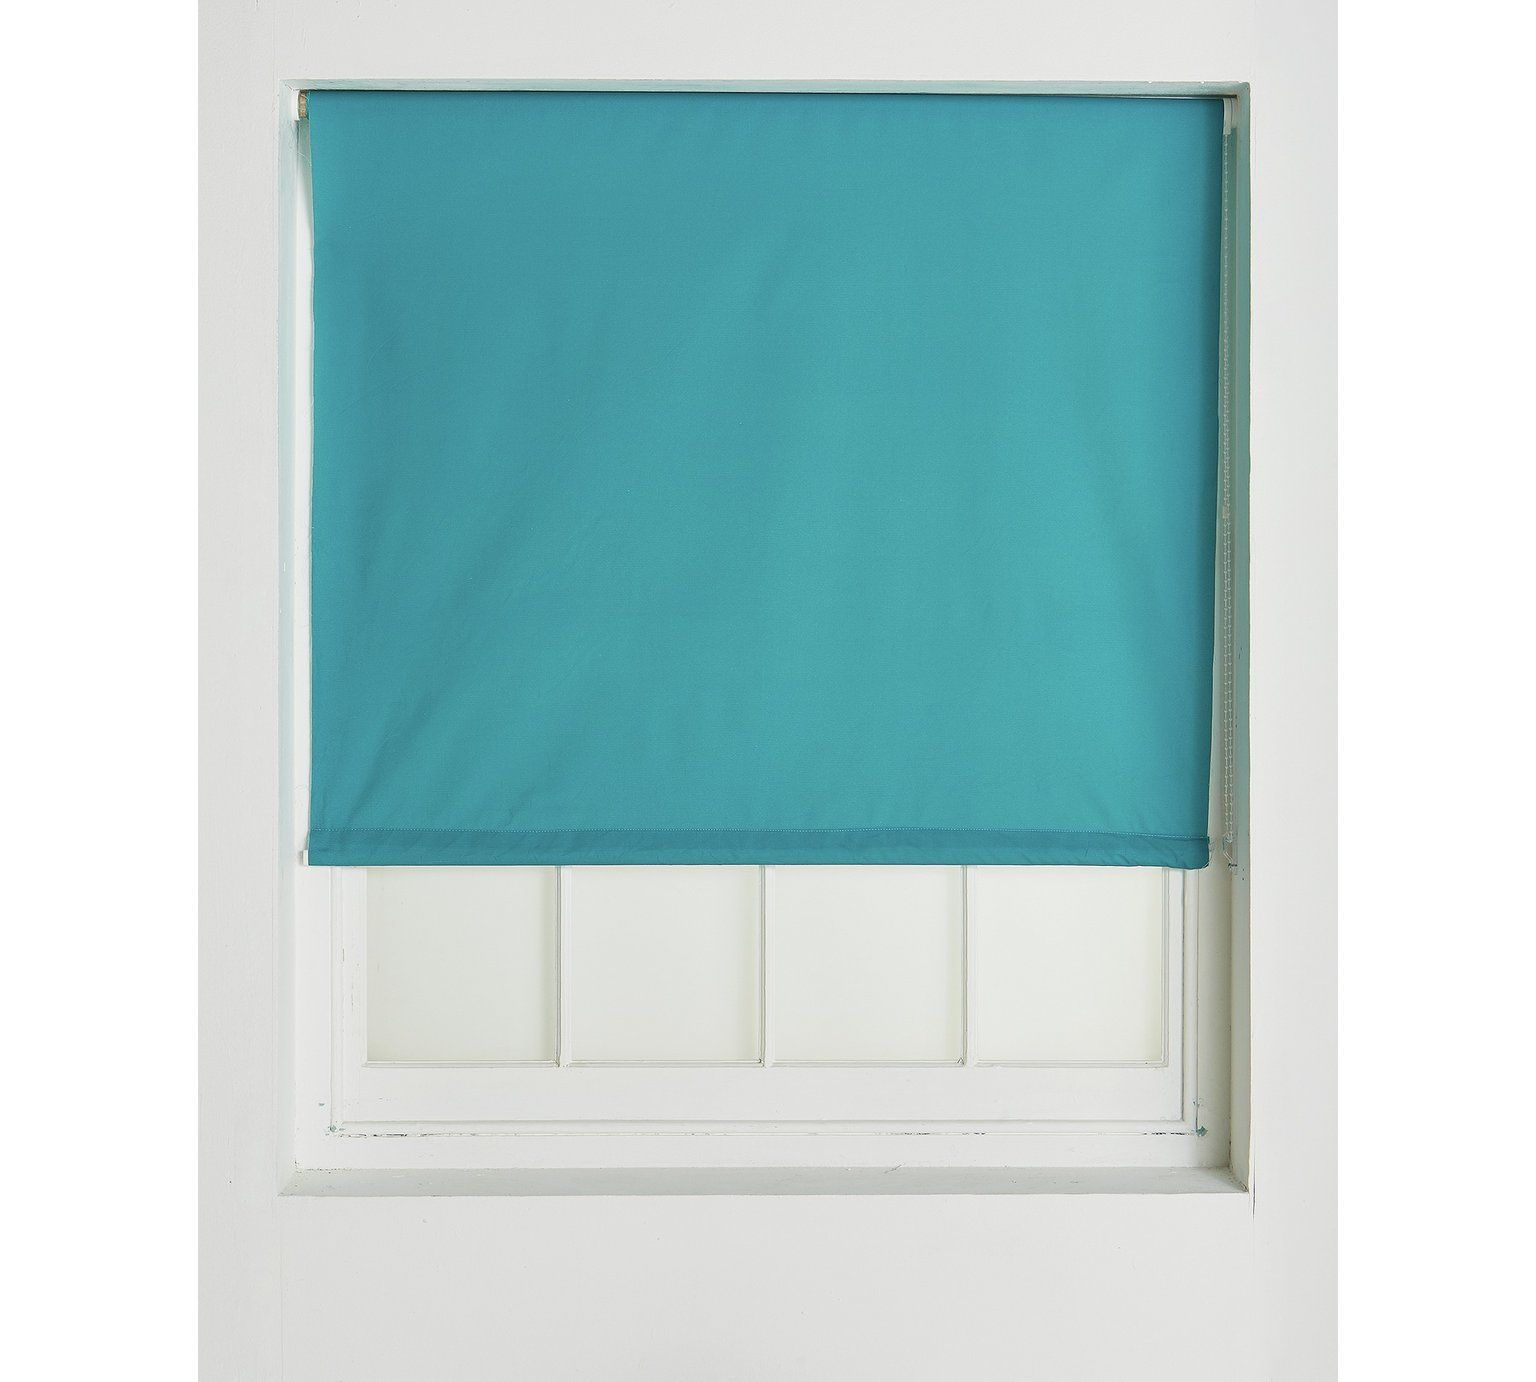 Buy ColourMatch Blackout Thermal Roller Blind - 3ft - Teal at Argos ...